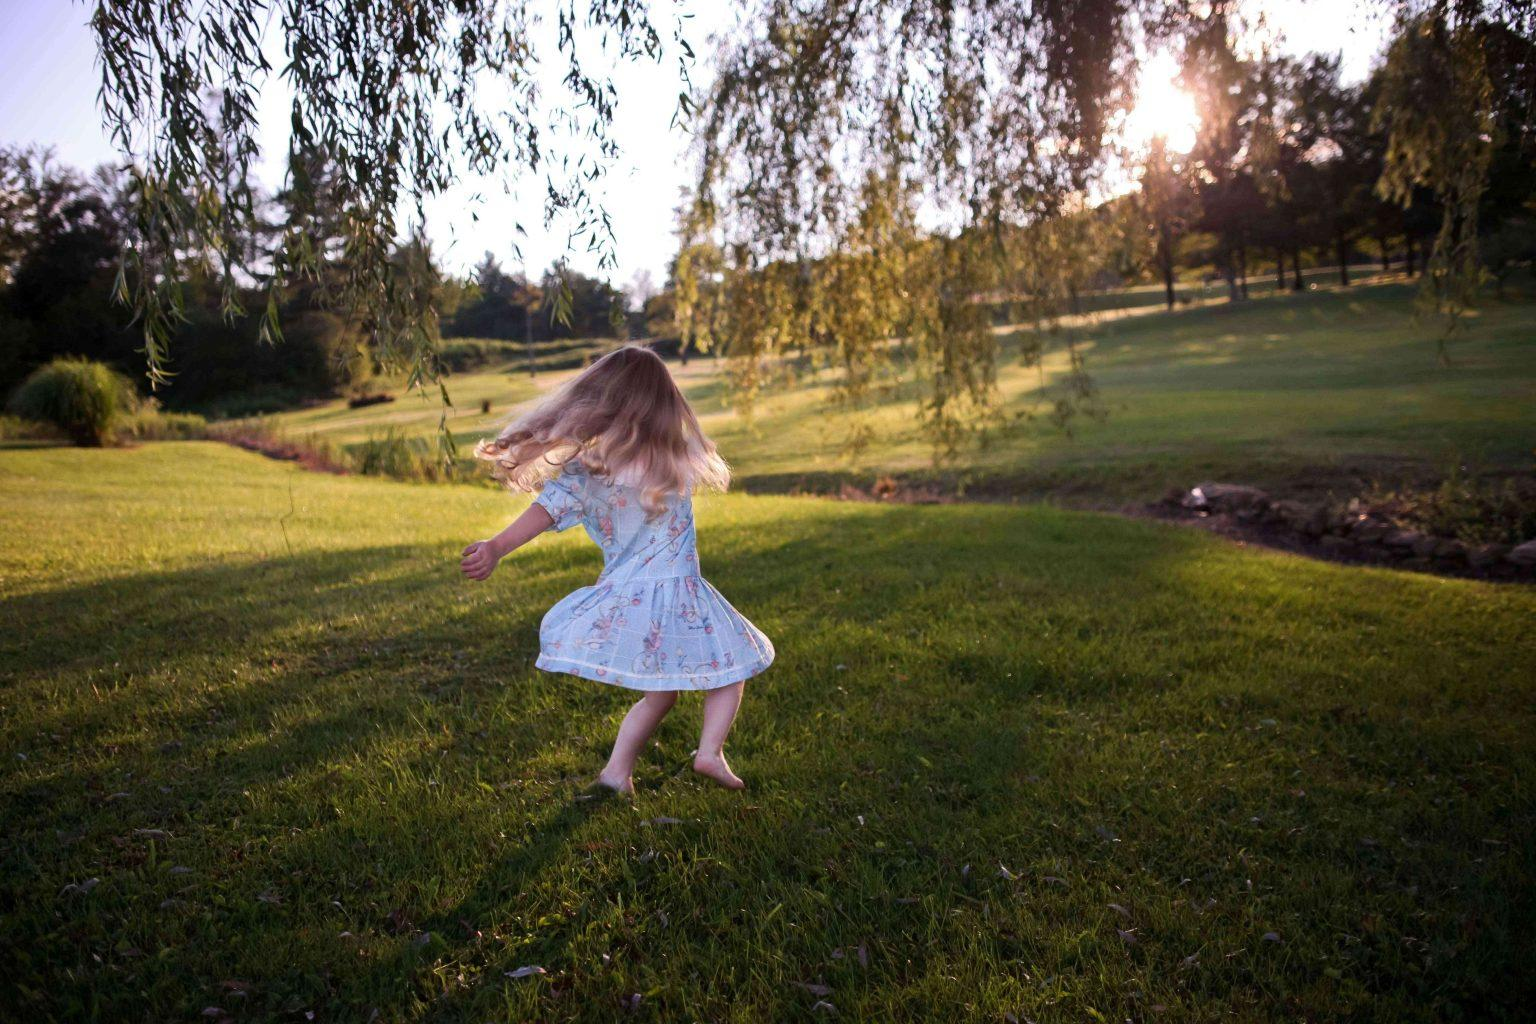 girl-playing-outside-in-summer-dress-playground-for-your-home-teachworkoutlove.com